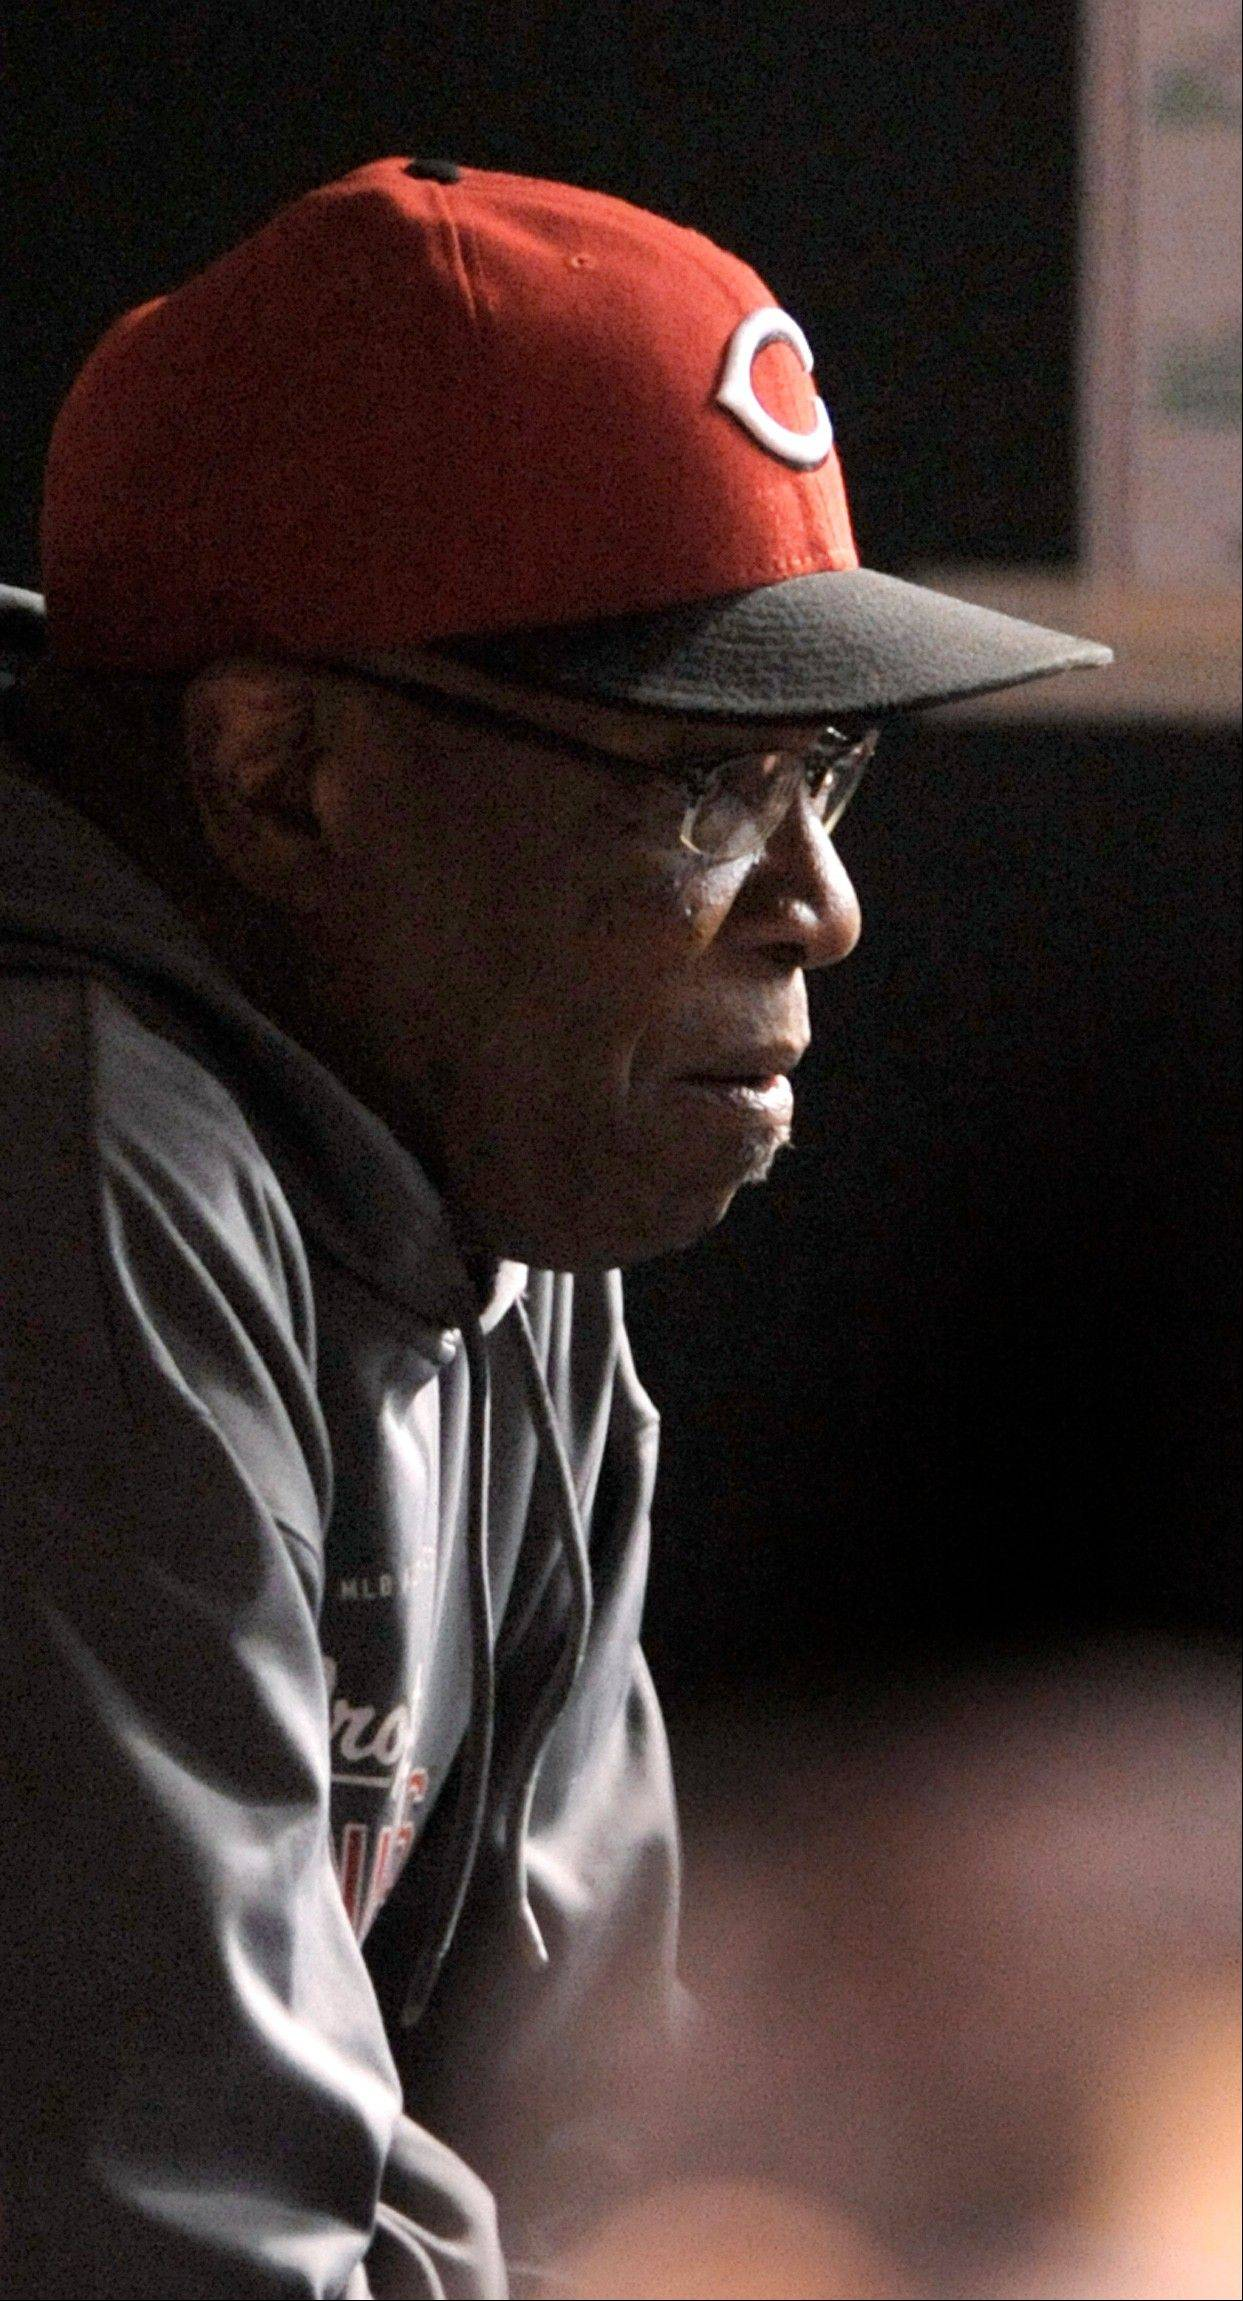 Cincinnati Reds manager Dusty Baker sits in the dugout during the second inning of a baseball game between the Reds and the Chicago Cubs in Chicago, Tuesday, Sept. 18, 2012. The game is Baker's 3,000th as a manager in the majors.